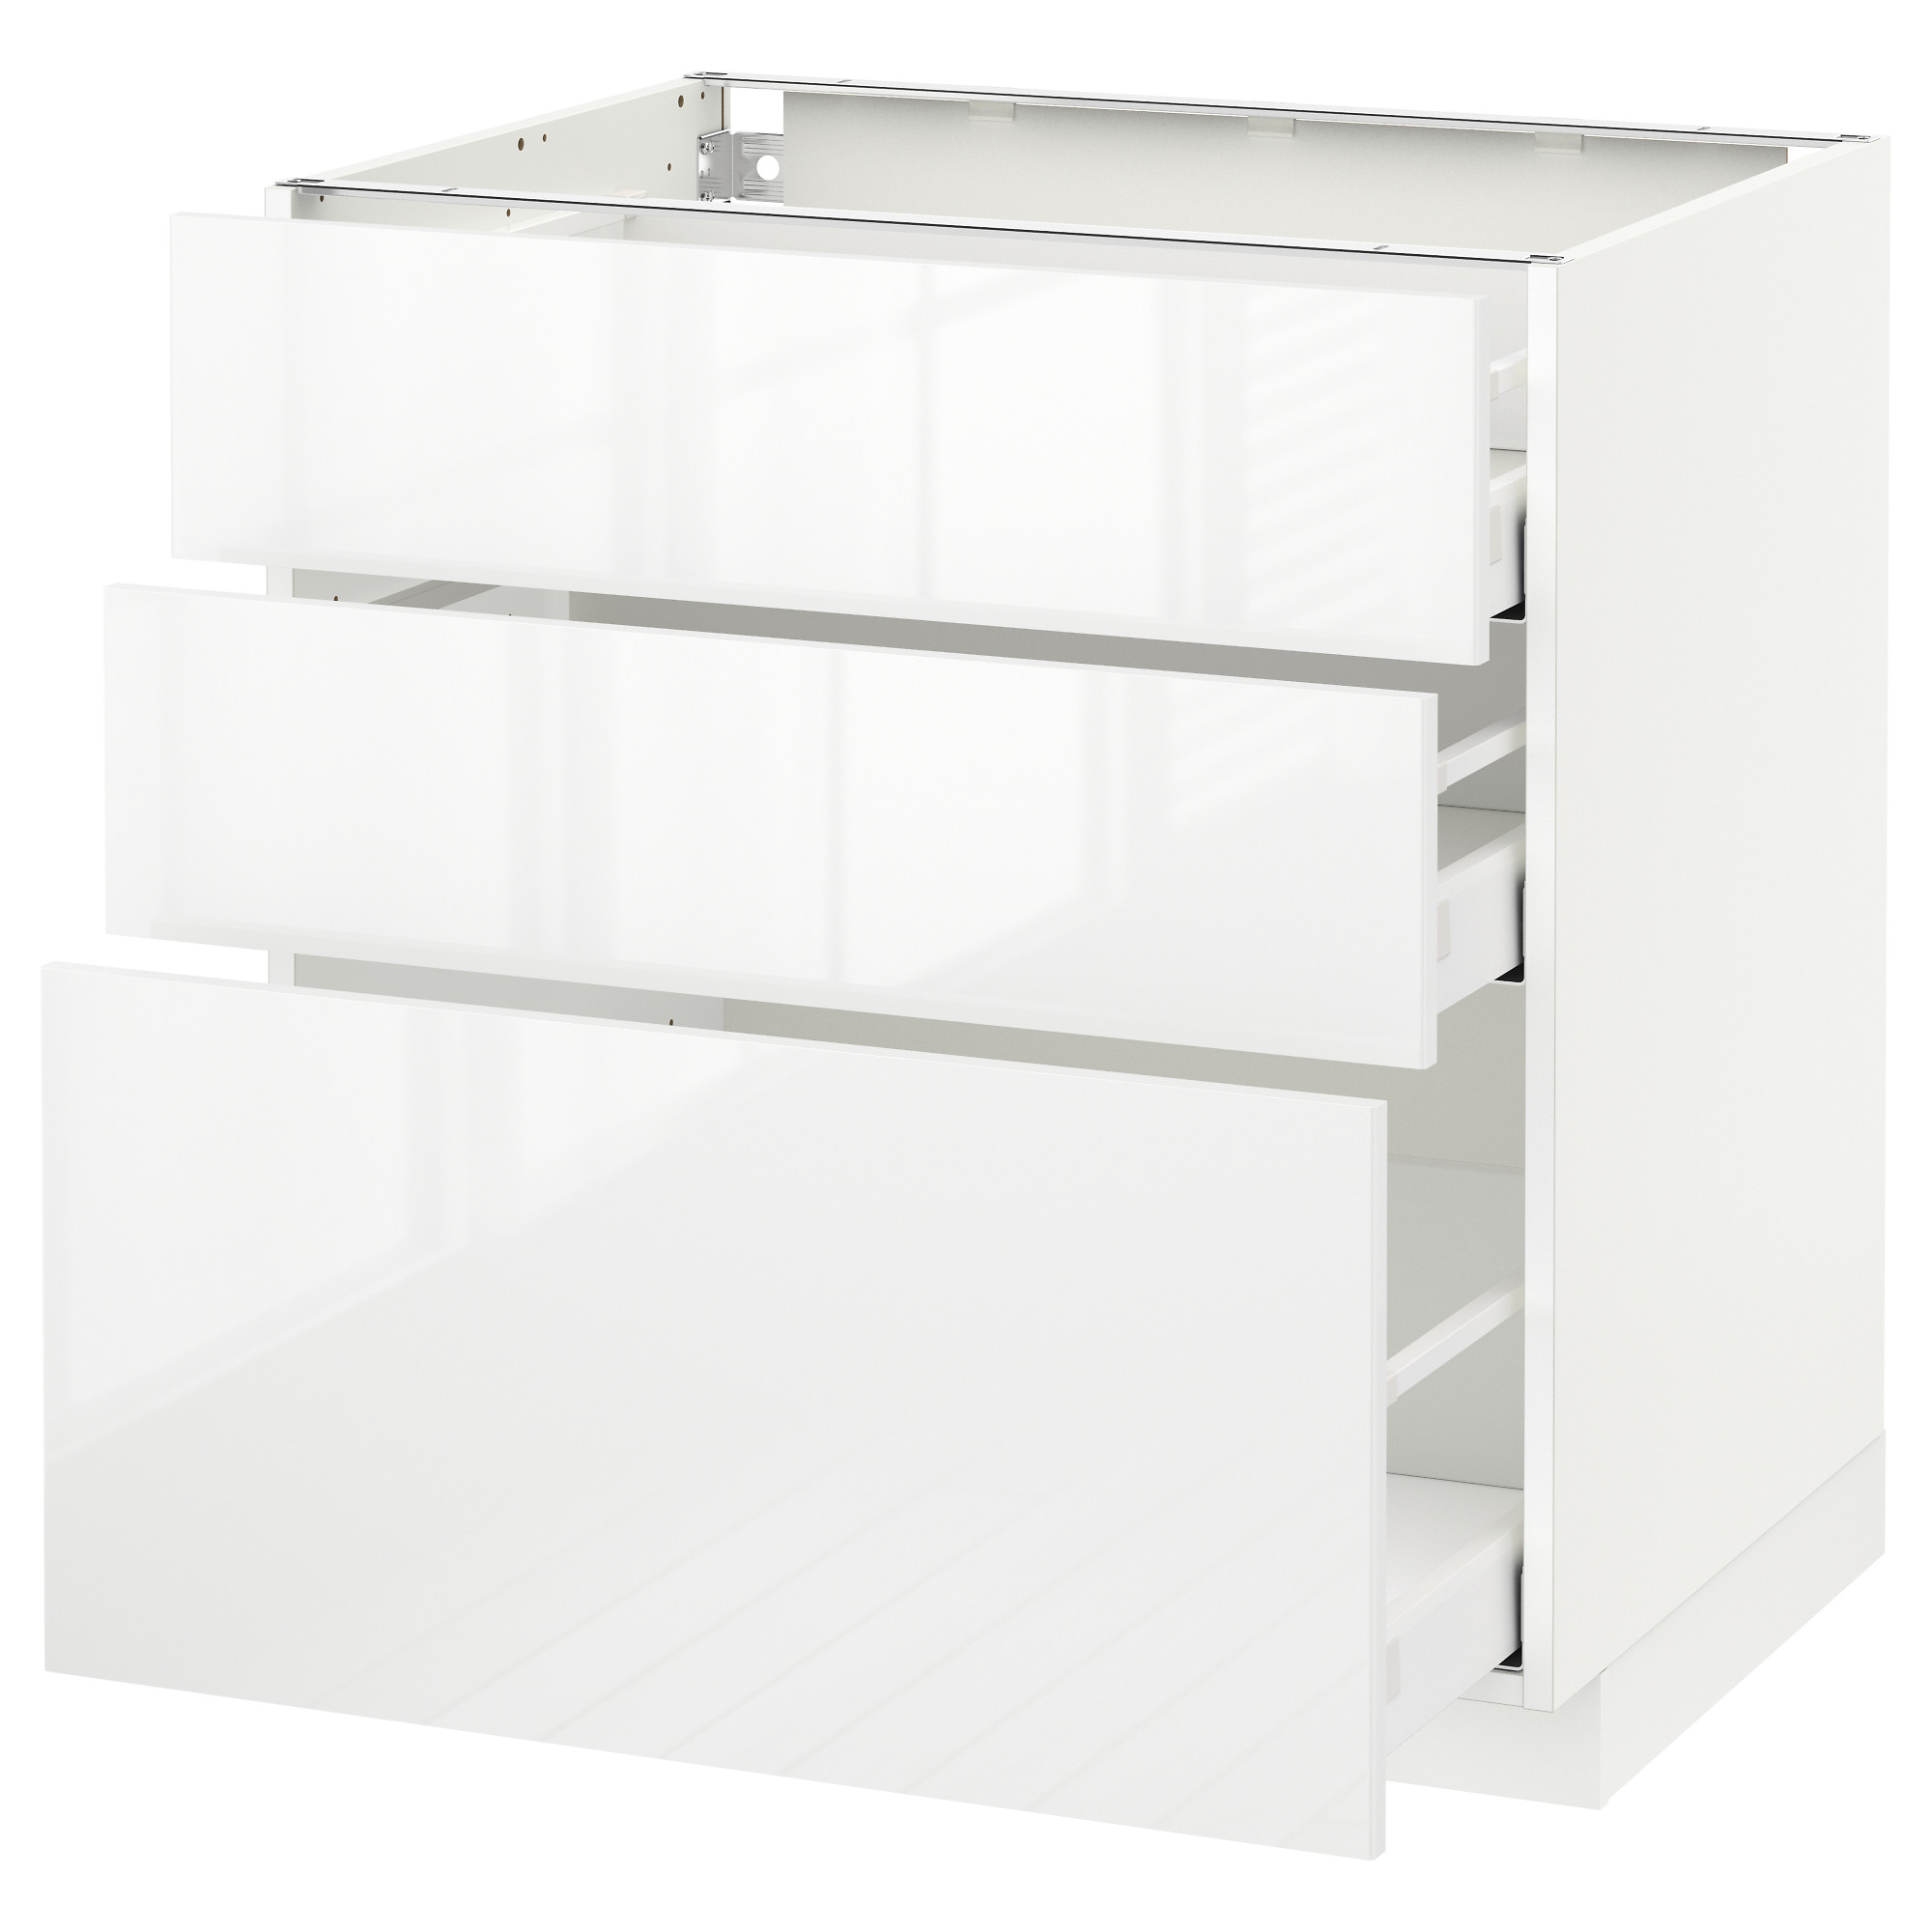 Metod Maximera Base Cabinet With 3 Drawers White Ringhult High Gloss 80x60 Cm Ikea